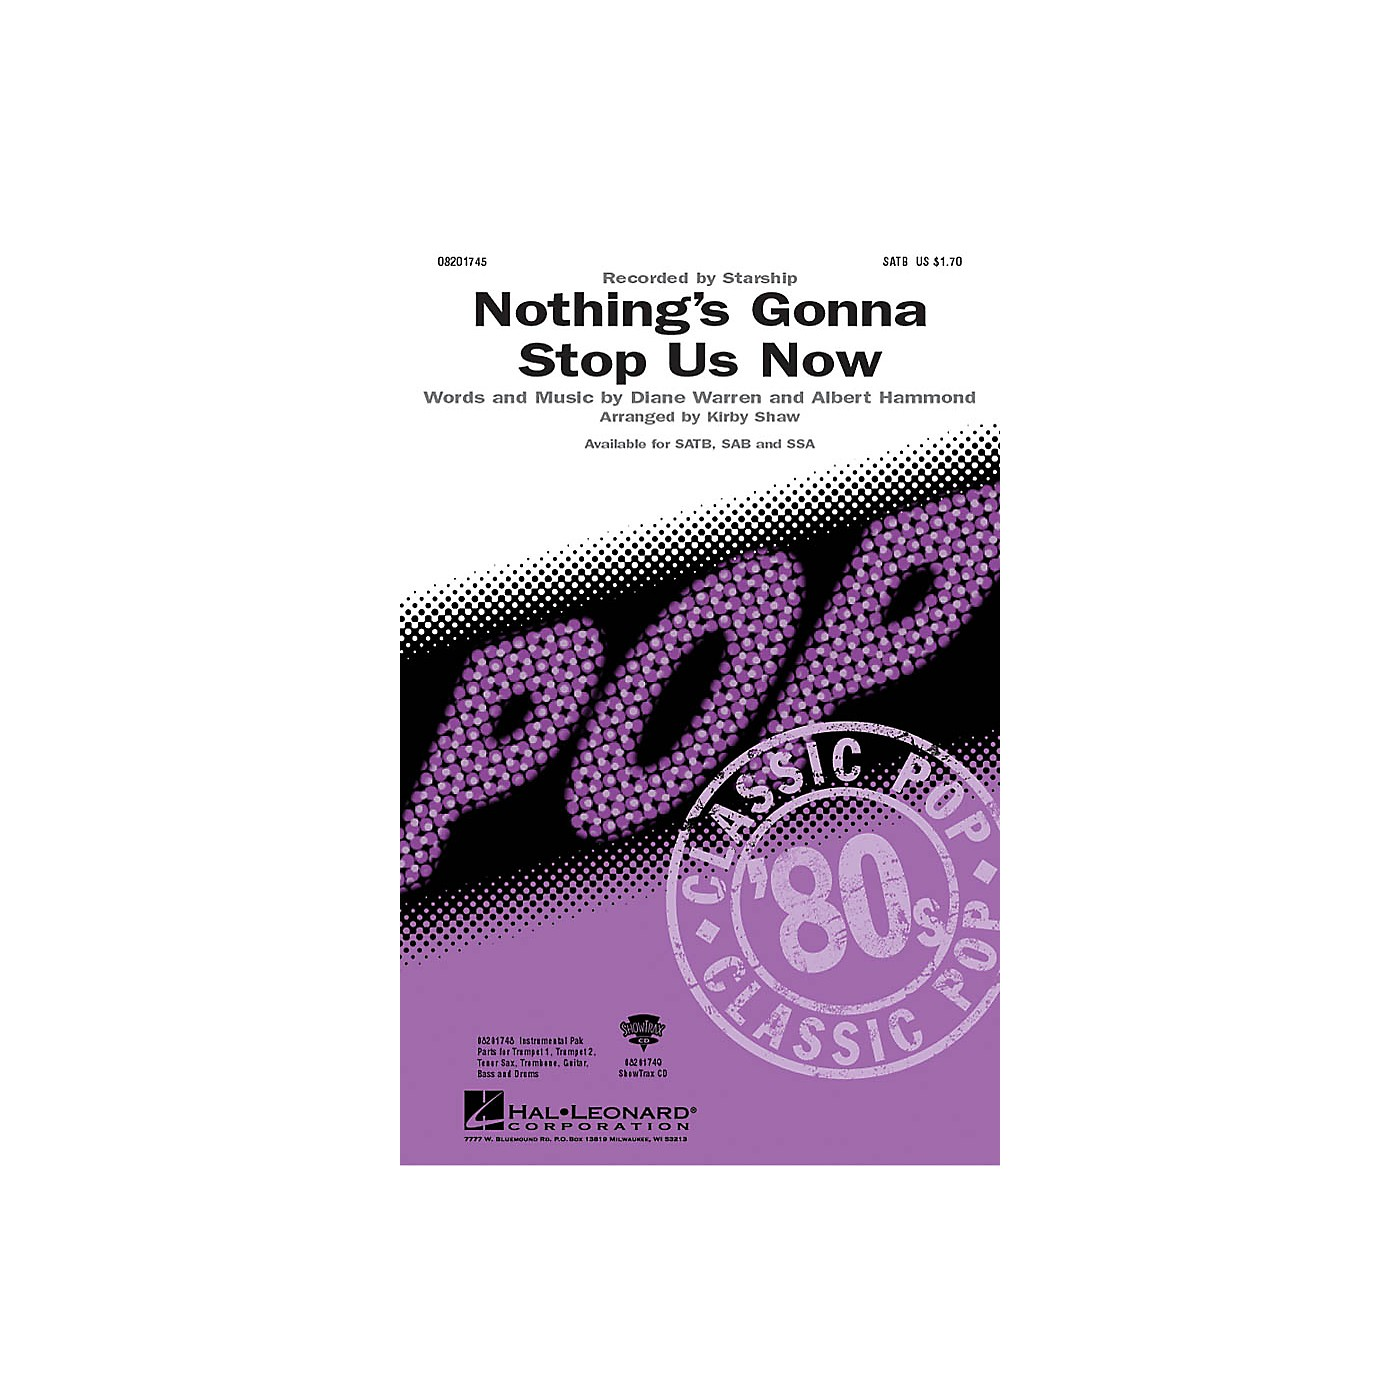 Hal Leonard Nothing's Gonna Stop Us Now SATB by Starship arranged by Kirby Shaw thumbnail